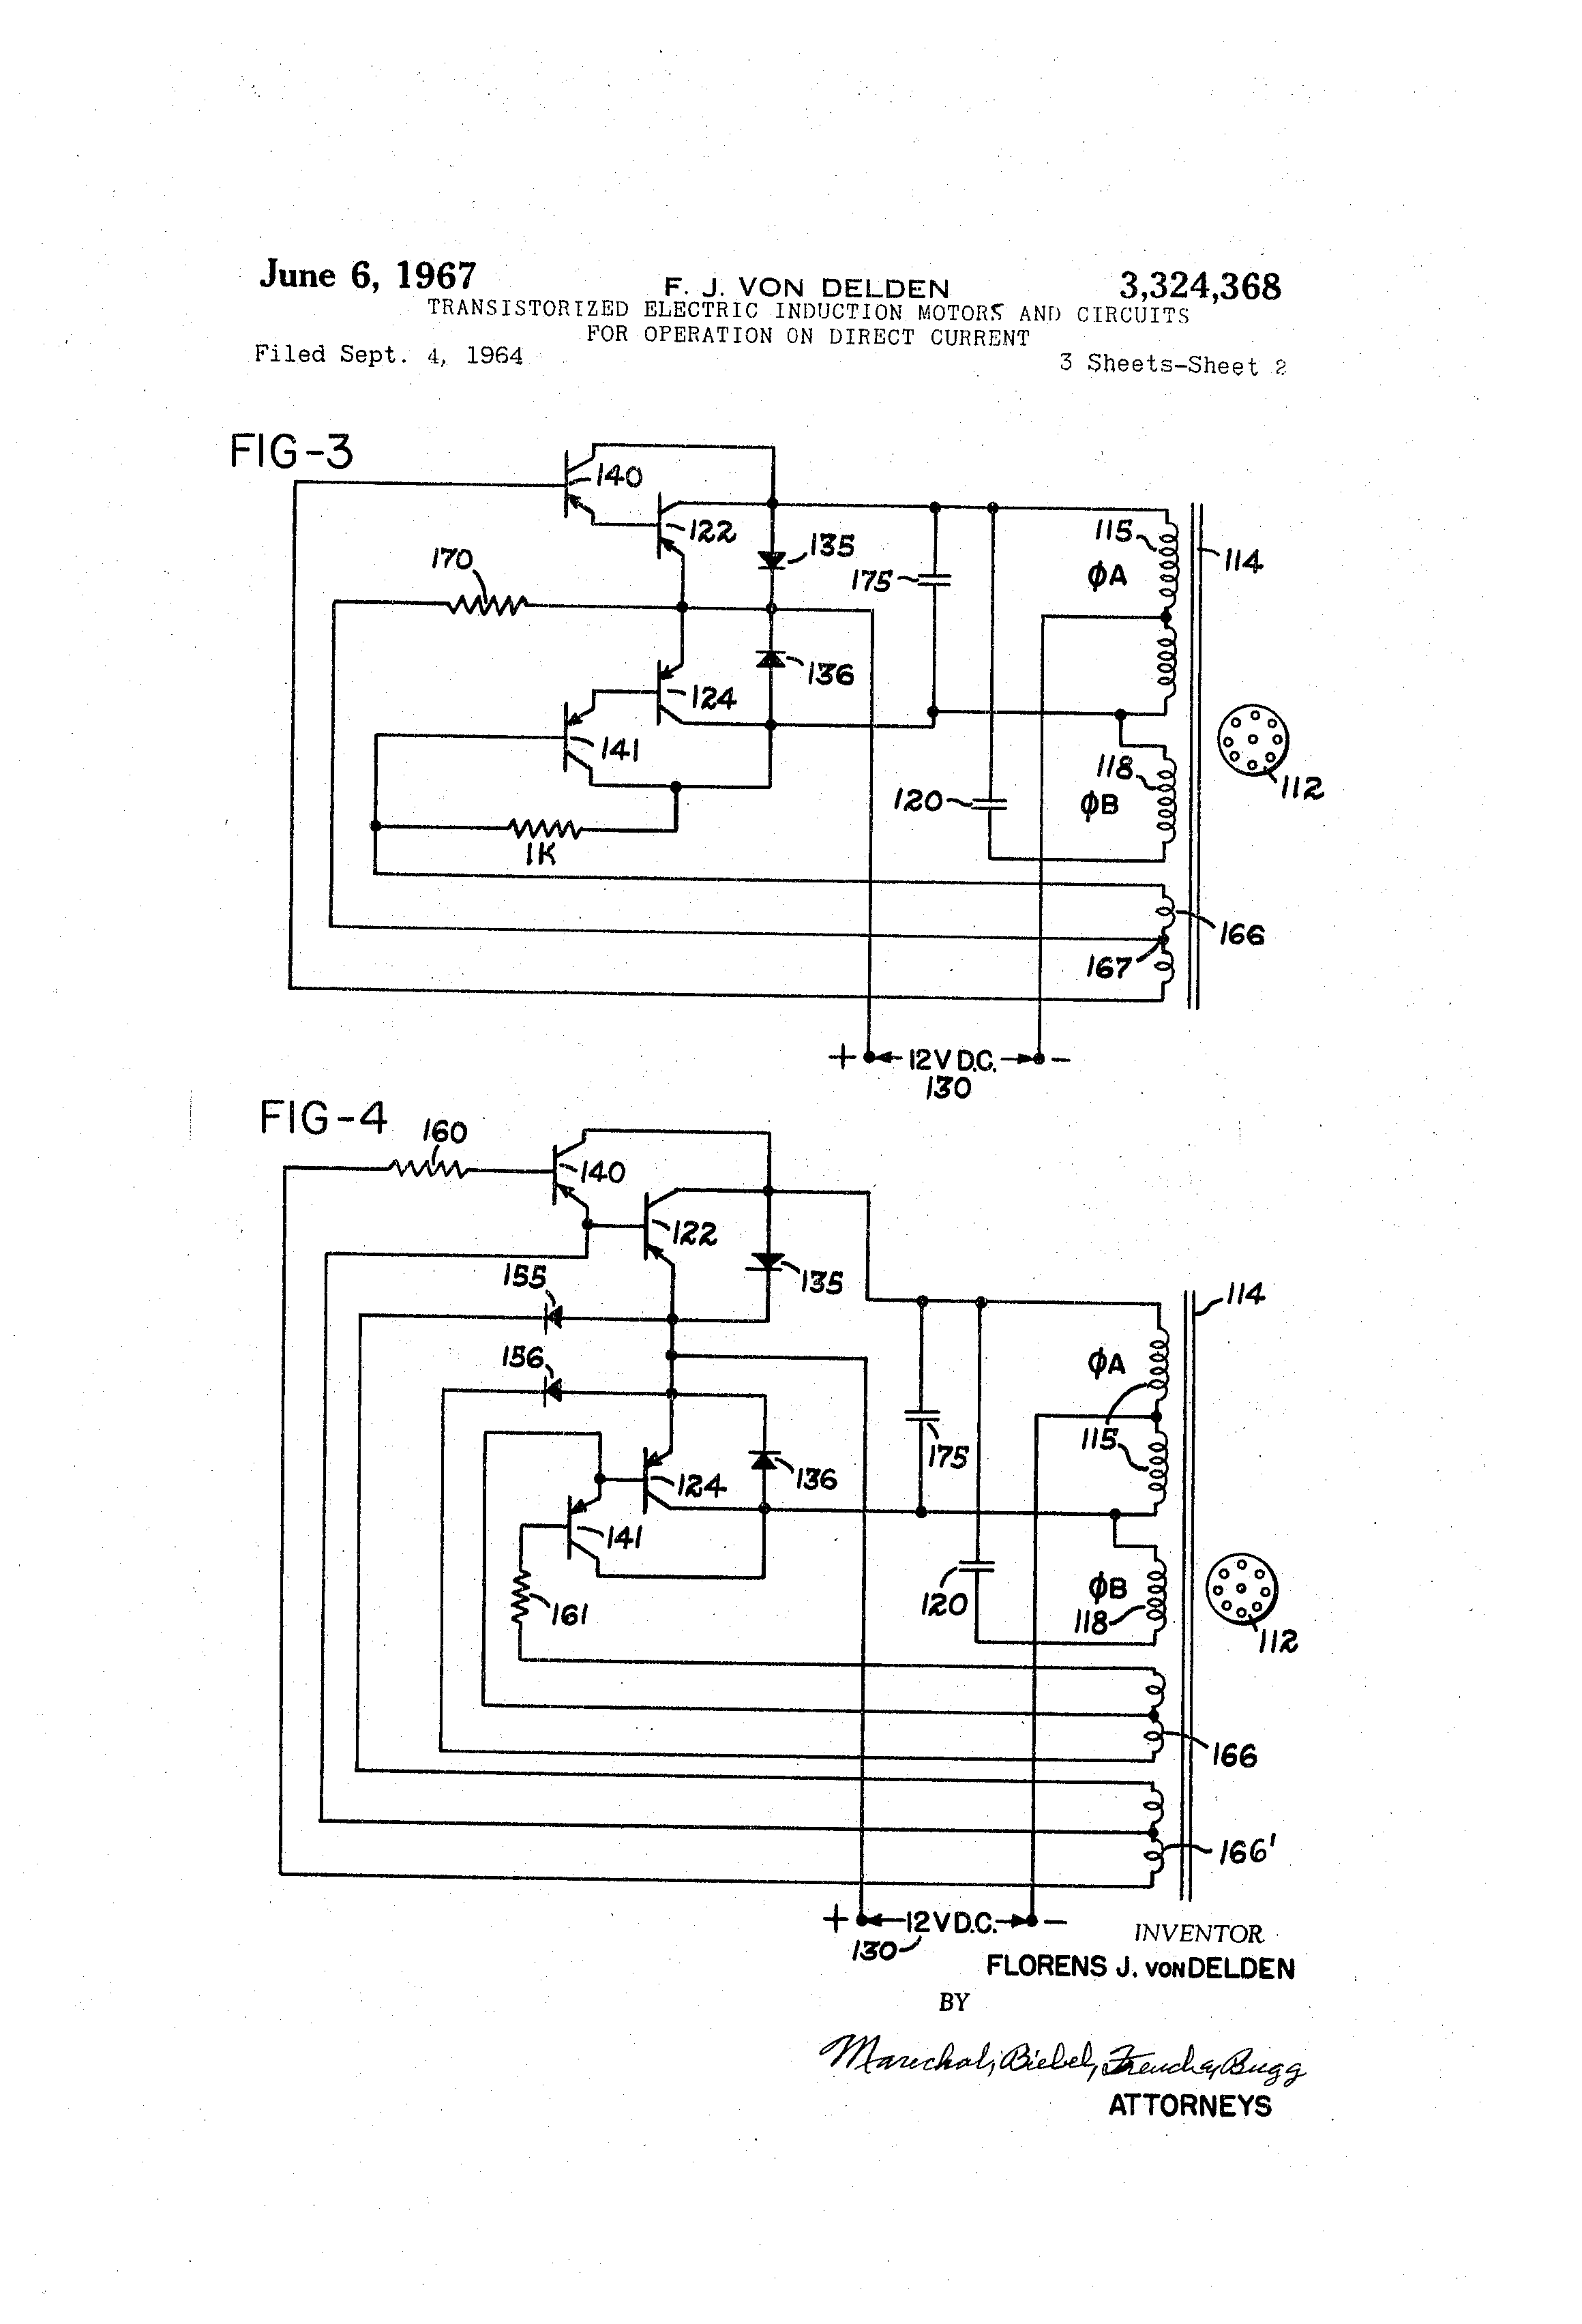 myers inverter wiring diagram myers image wiring patent us3324368 transistorized electric induction motors and on myers inverter wiring diagram